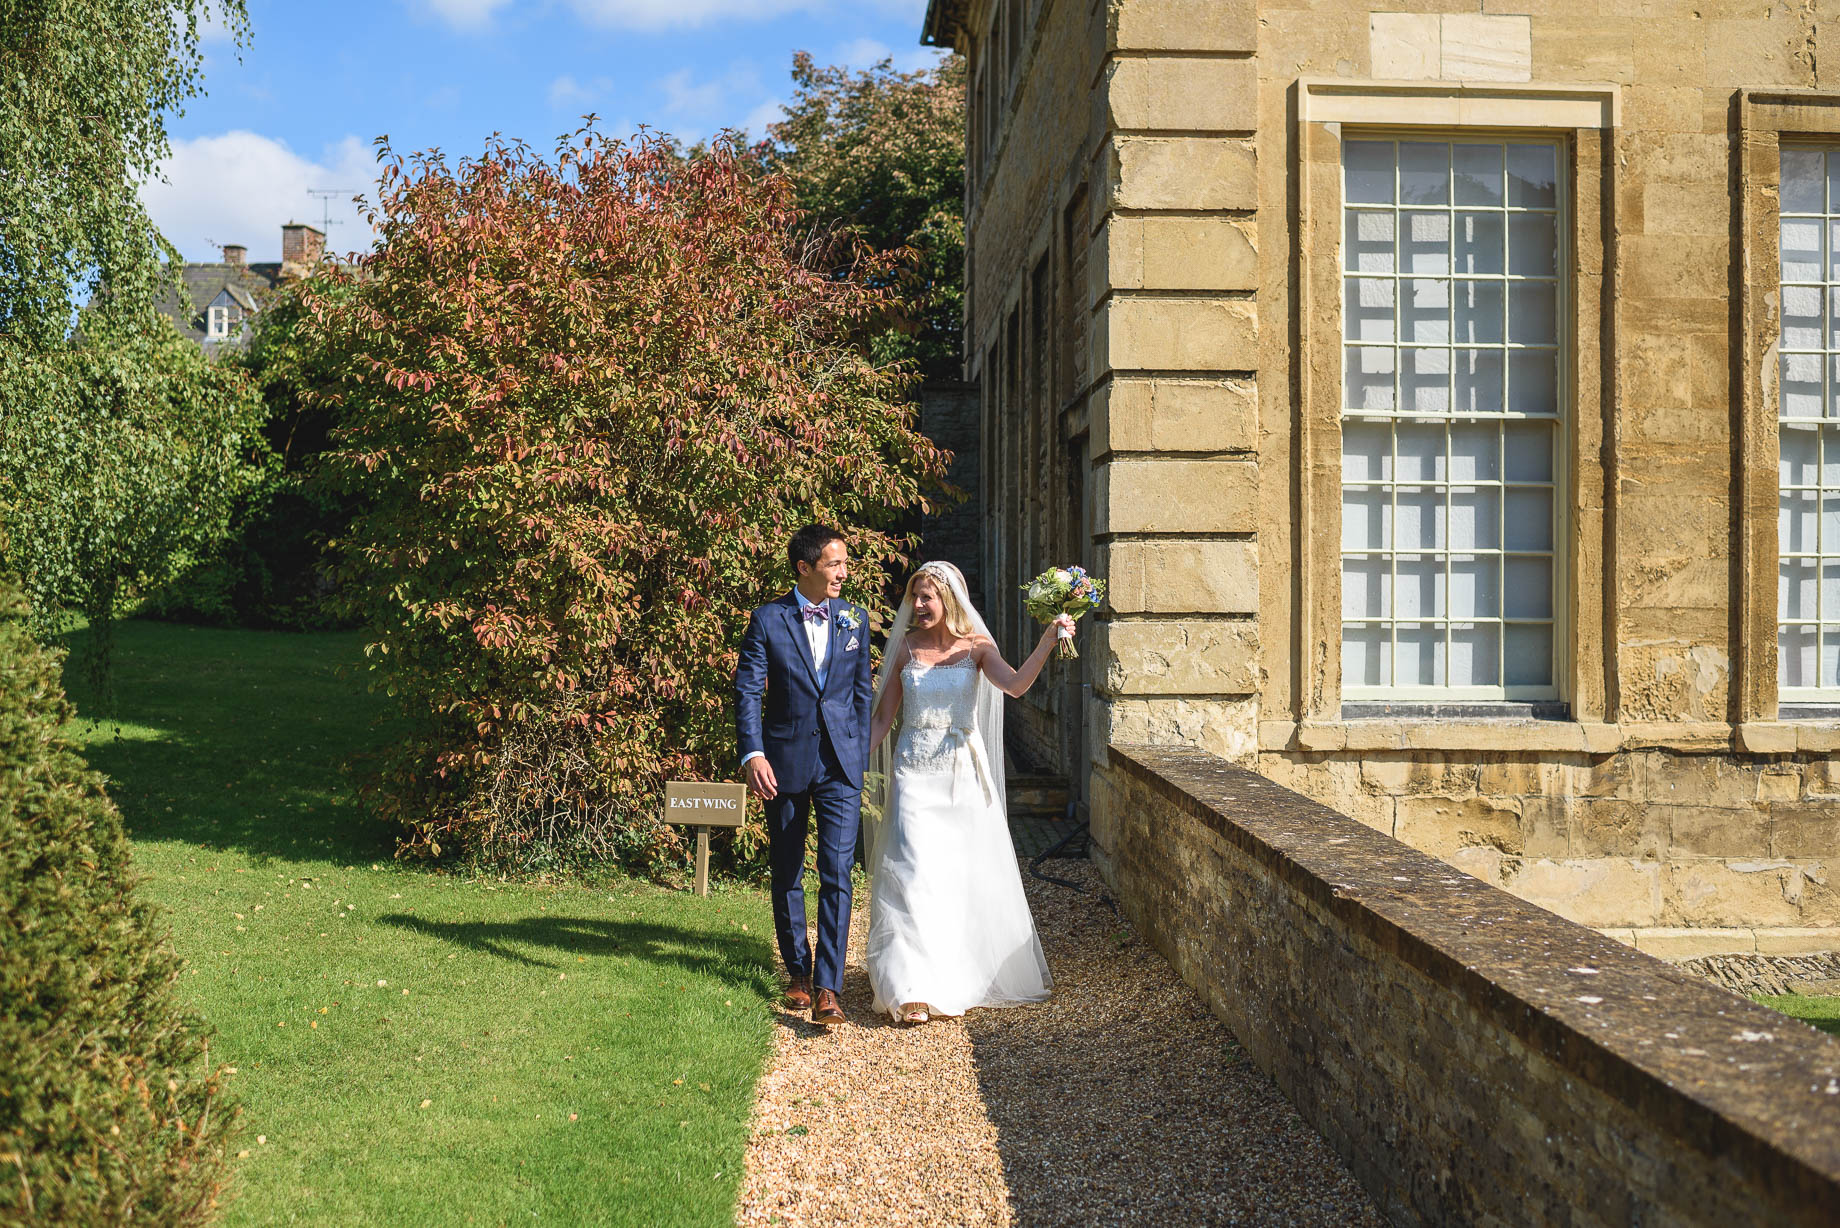 Aynhoe Park wedding photography - Guy Collier - Becky and Nick (115 of 233)